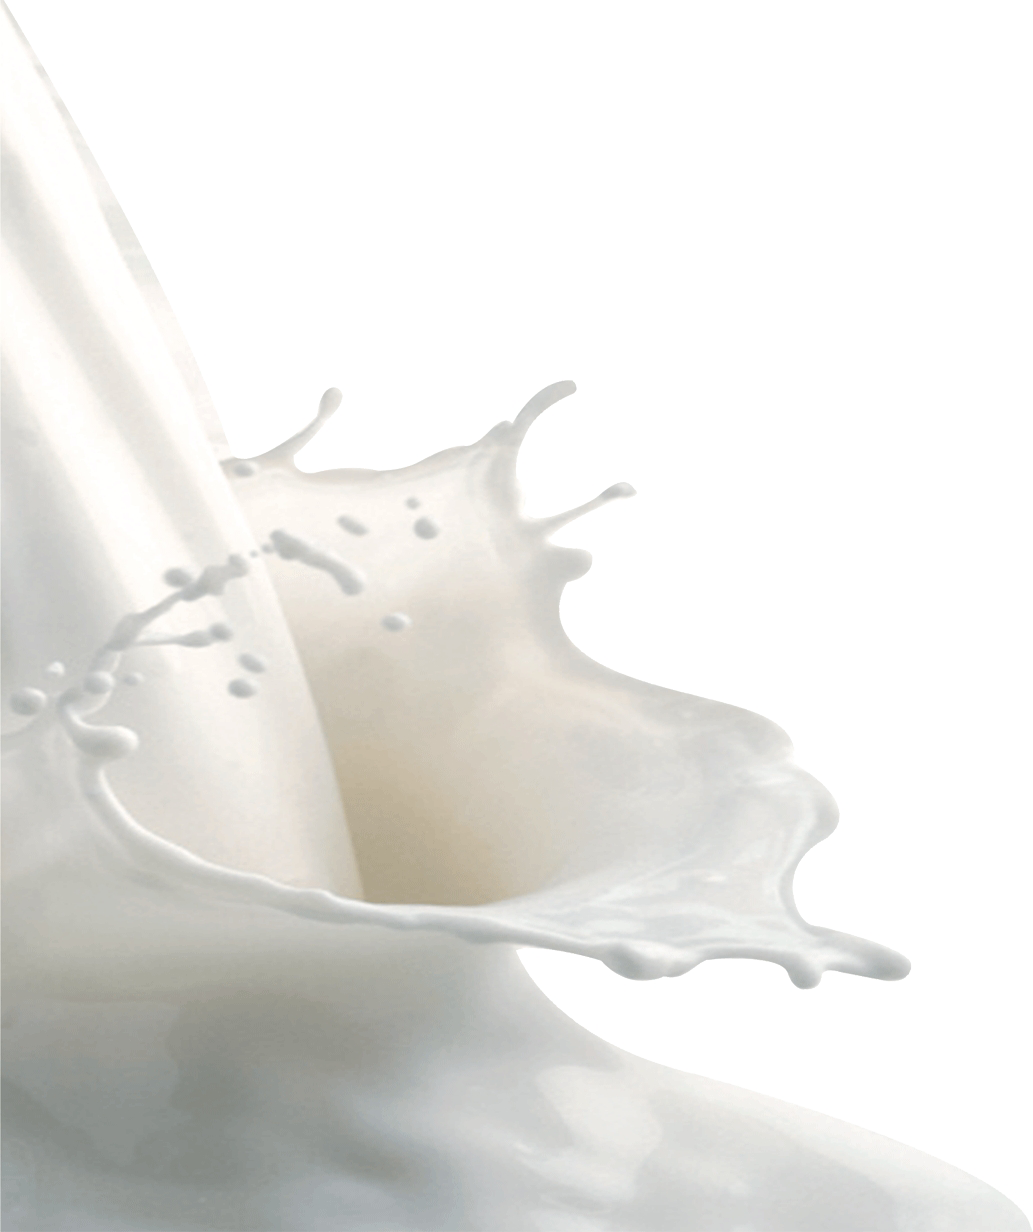 Milk splash png. Images free download jar